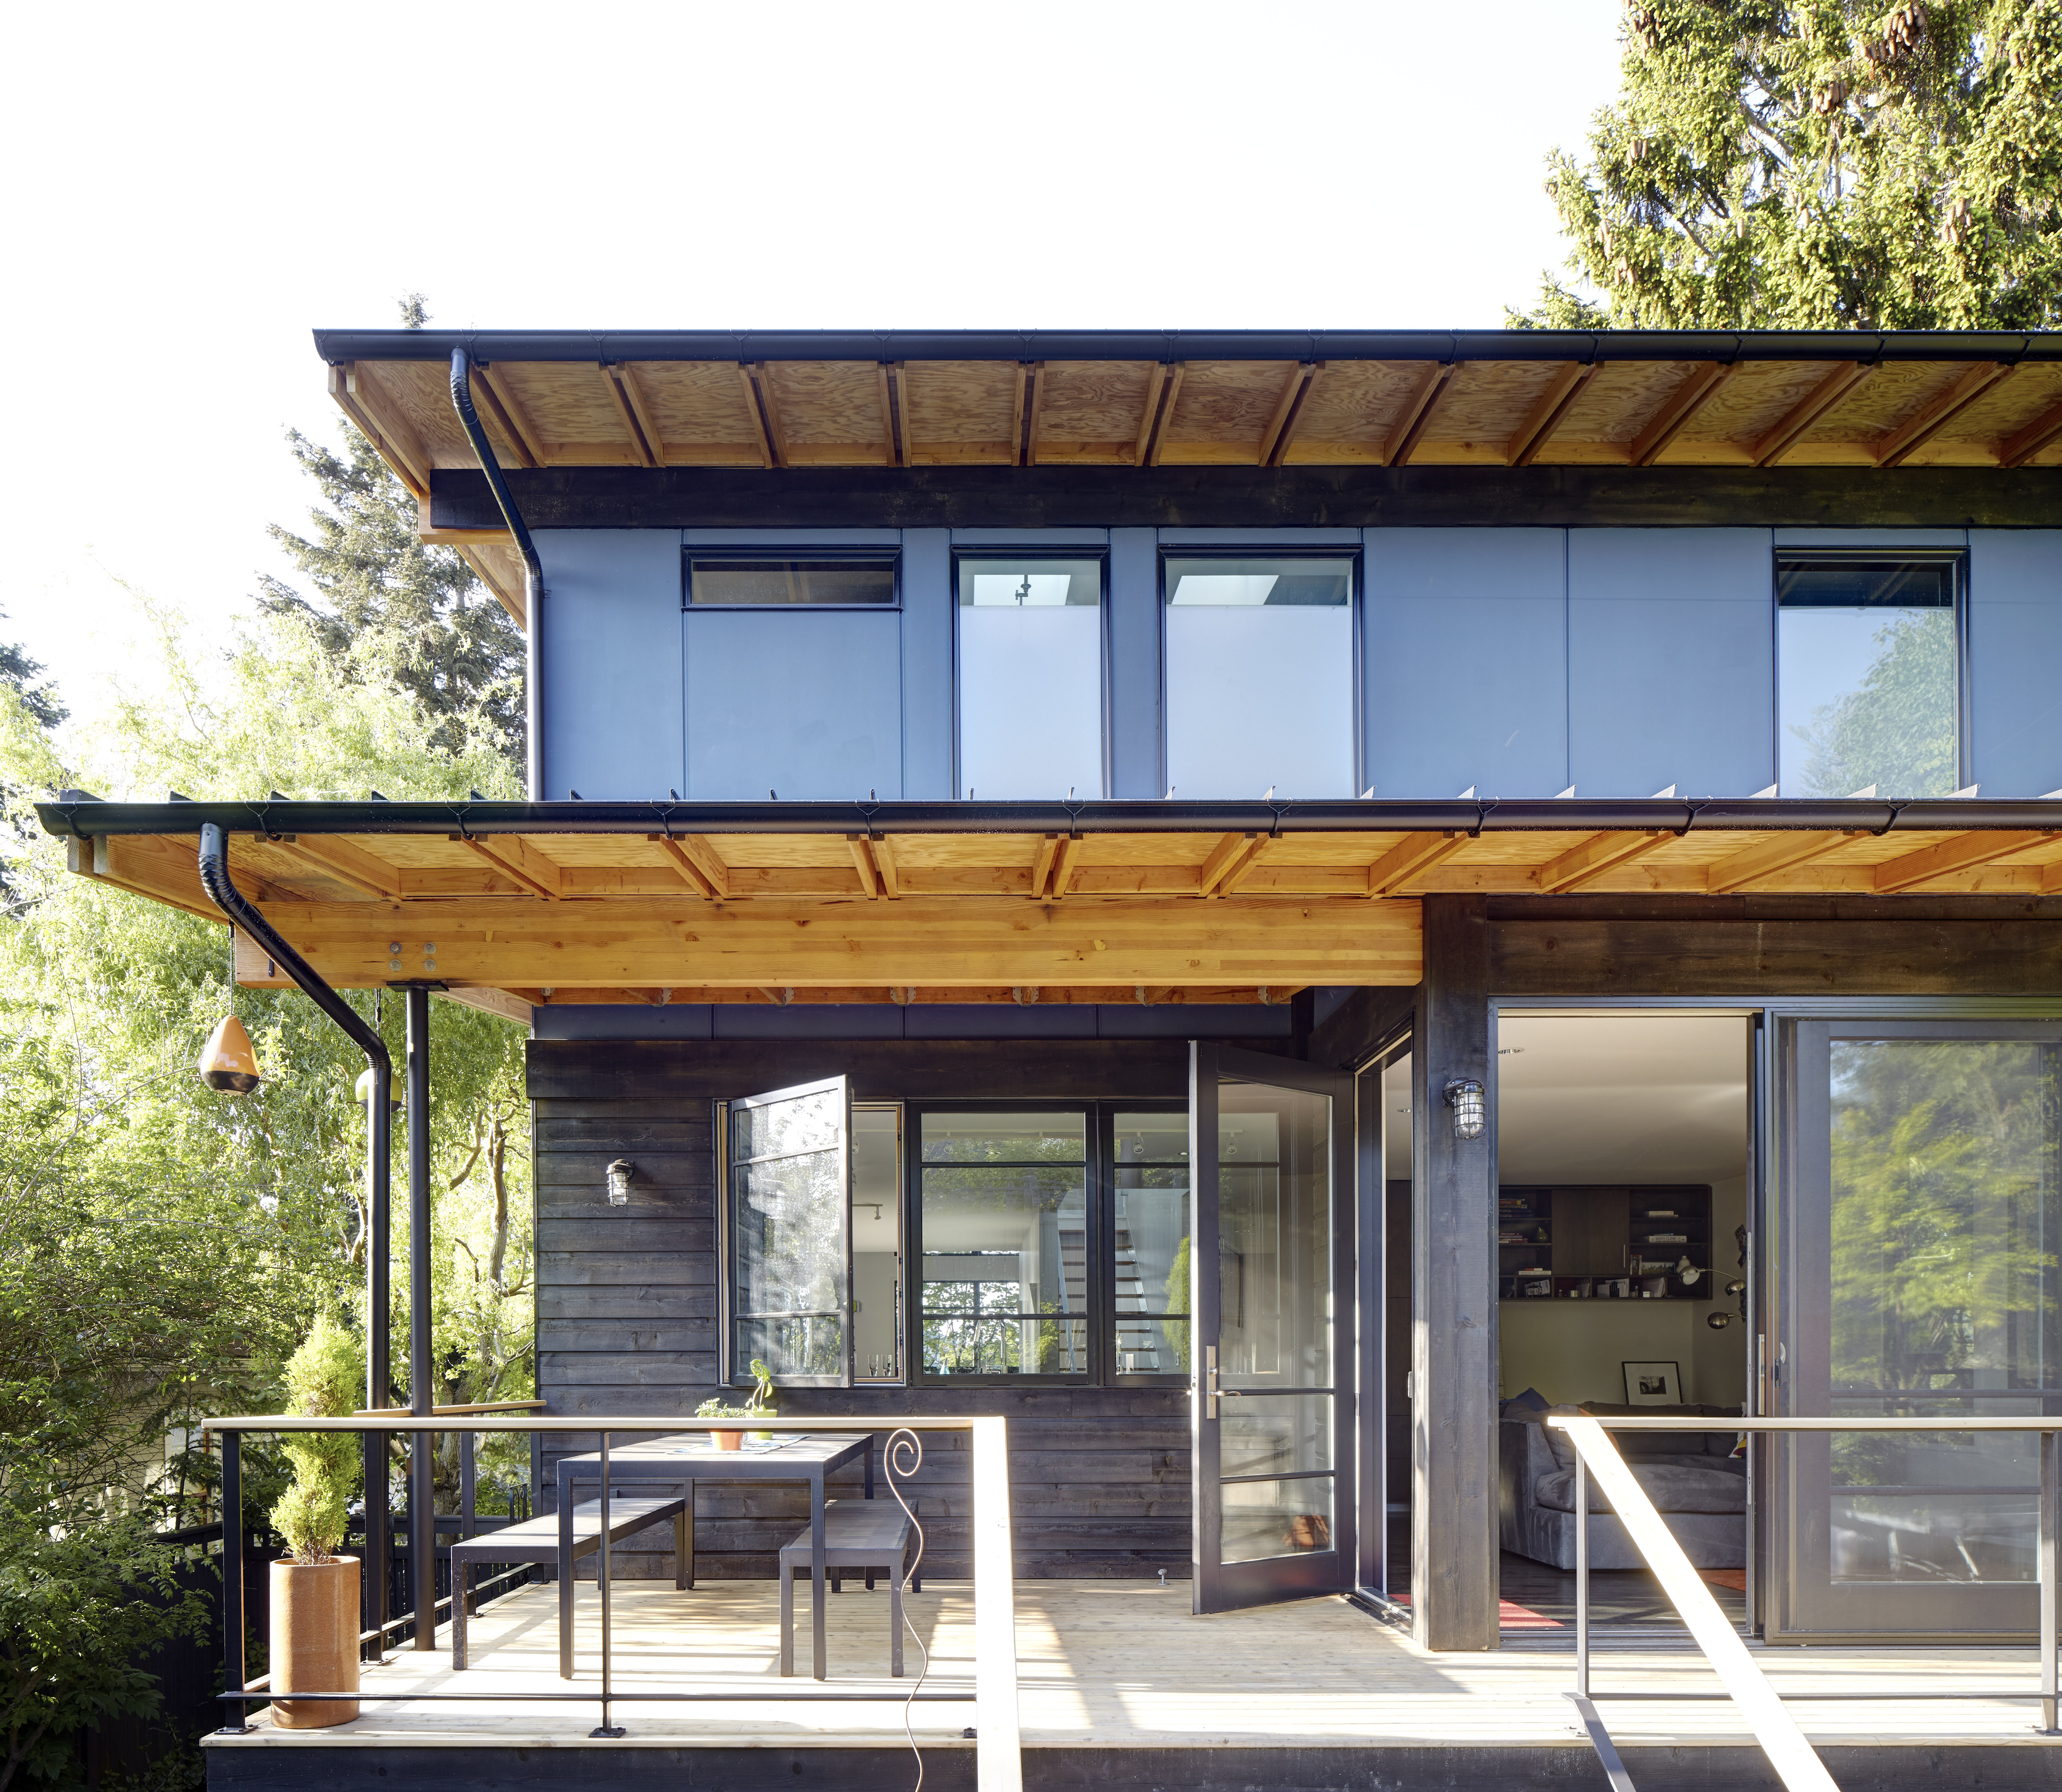 see inside eight seattle modern homes - curbed seattle